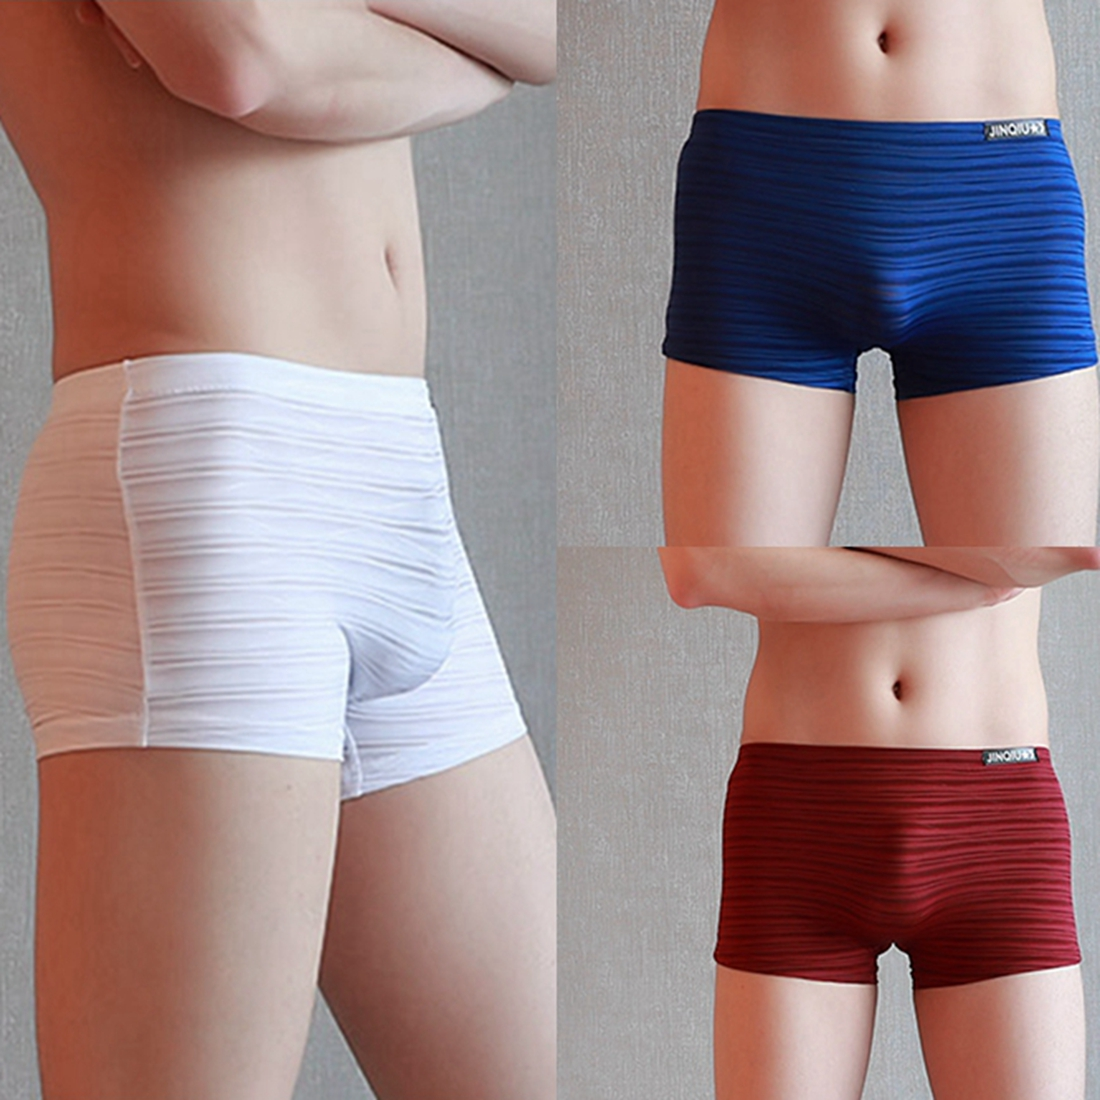 Mens Underwear Shorts Pants Boxers Underpants Soft Briefs Breathable knickers HK